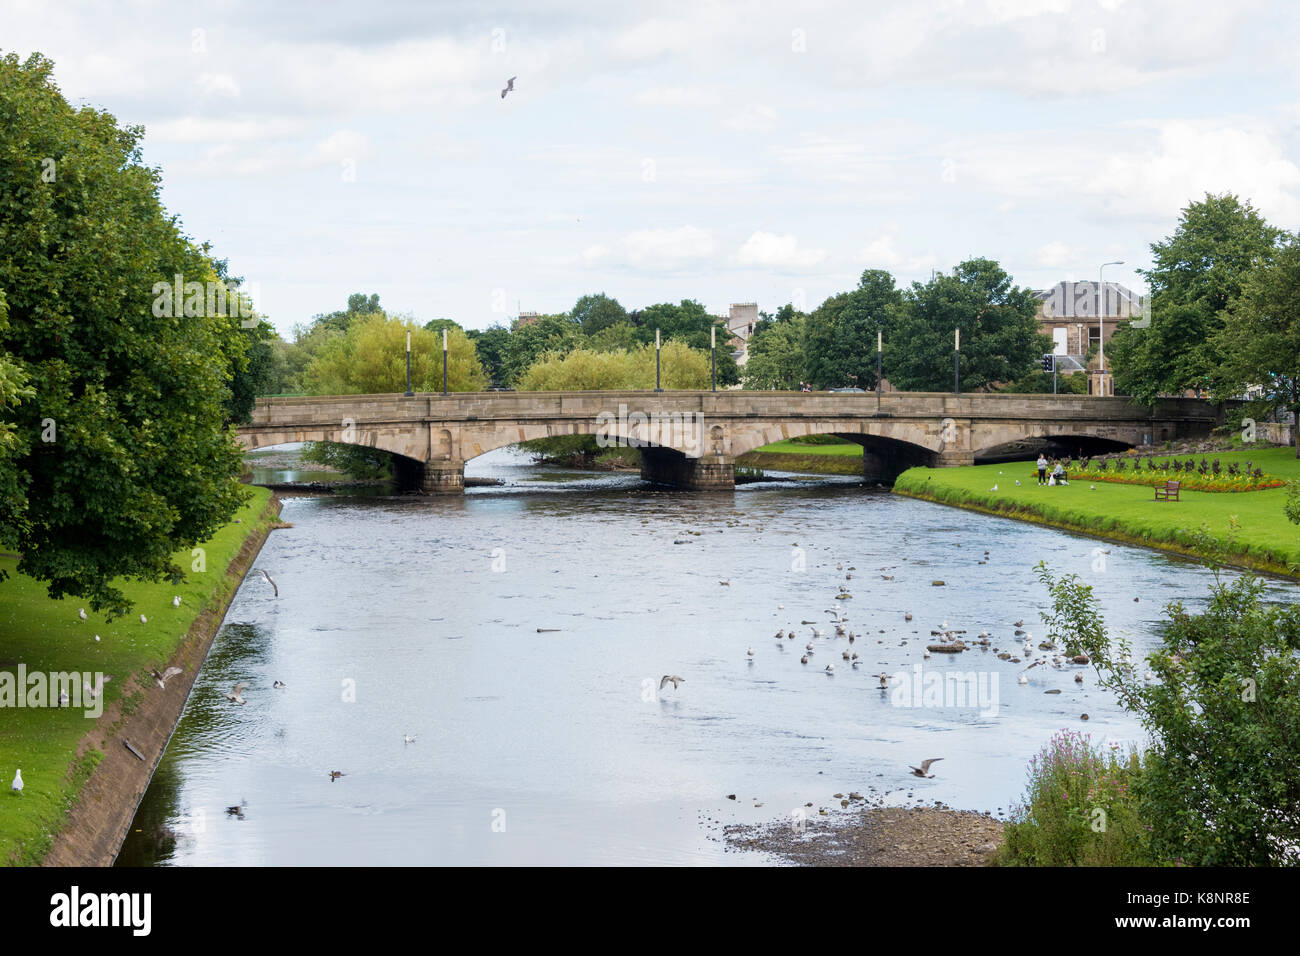 Bridge over the River Esk Musselburgh - Stock Image